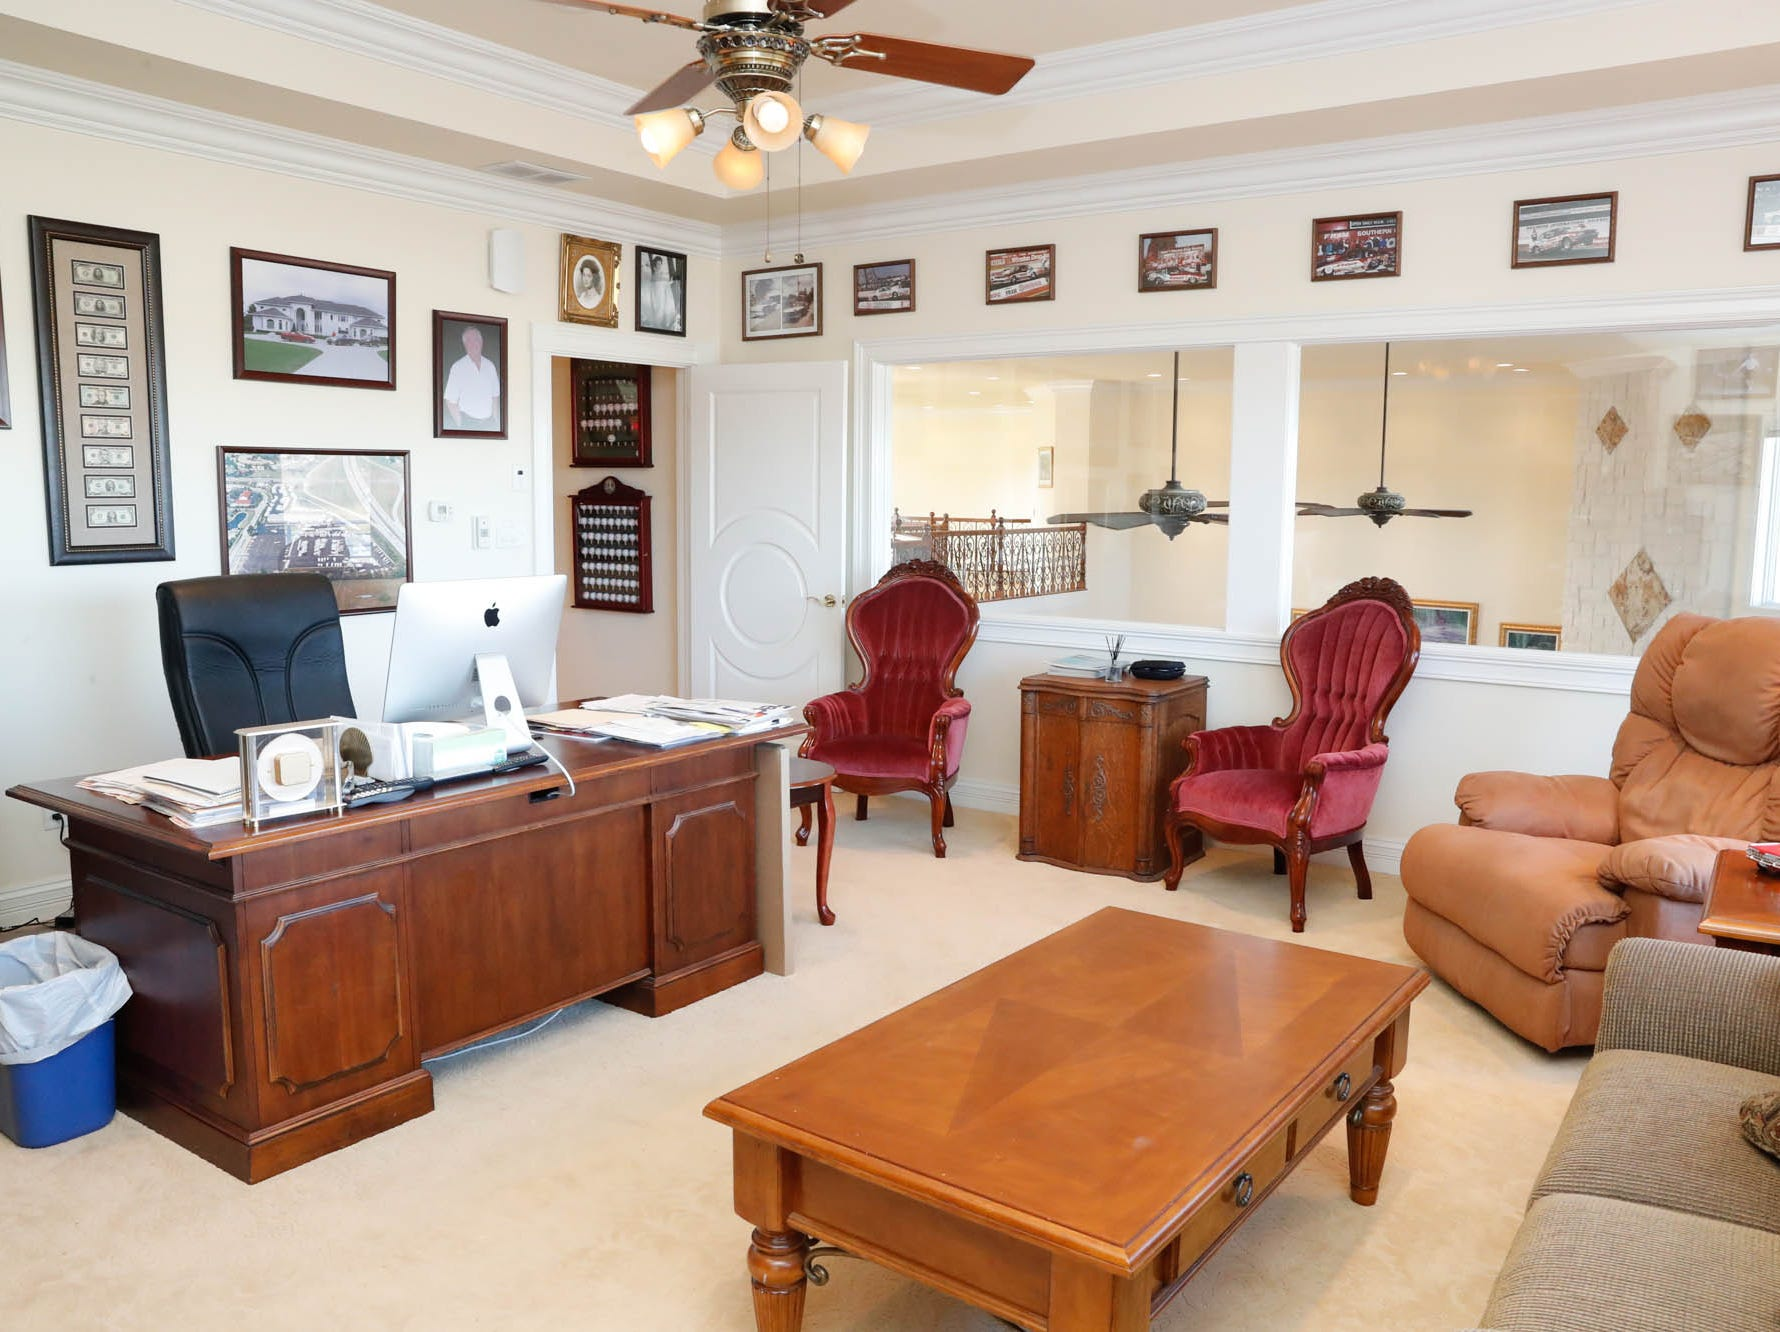 A second study/home office features a door to a large wrap around porch and windows overlooking an open plan living room at a Greenwood home up for sale at 1216 Stone Ridge Court, Greenwood, Ind. on Wednesday, Jan. 30, 2019. The home features 8,234 square feet, four bedrooms, two master suites, a 10 car garage, and an exercise room.